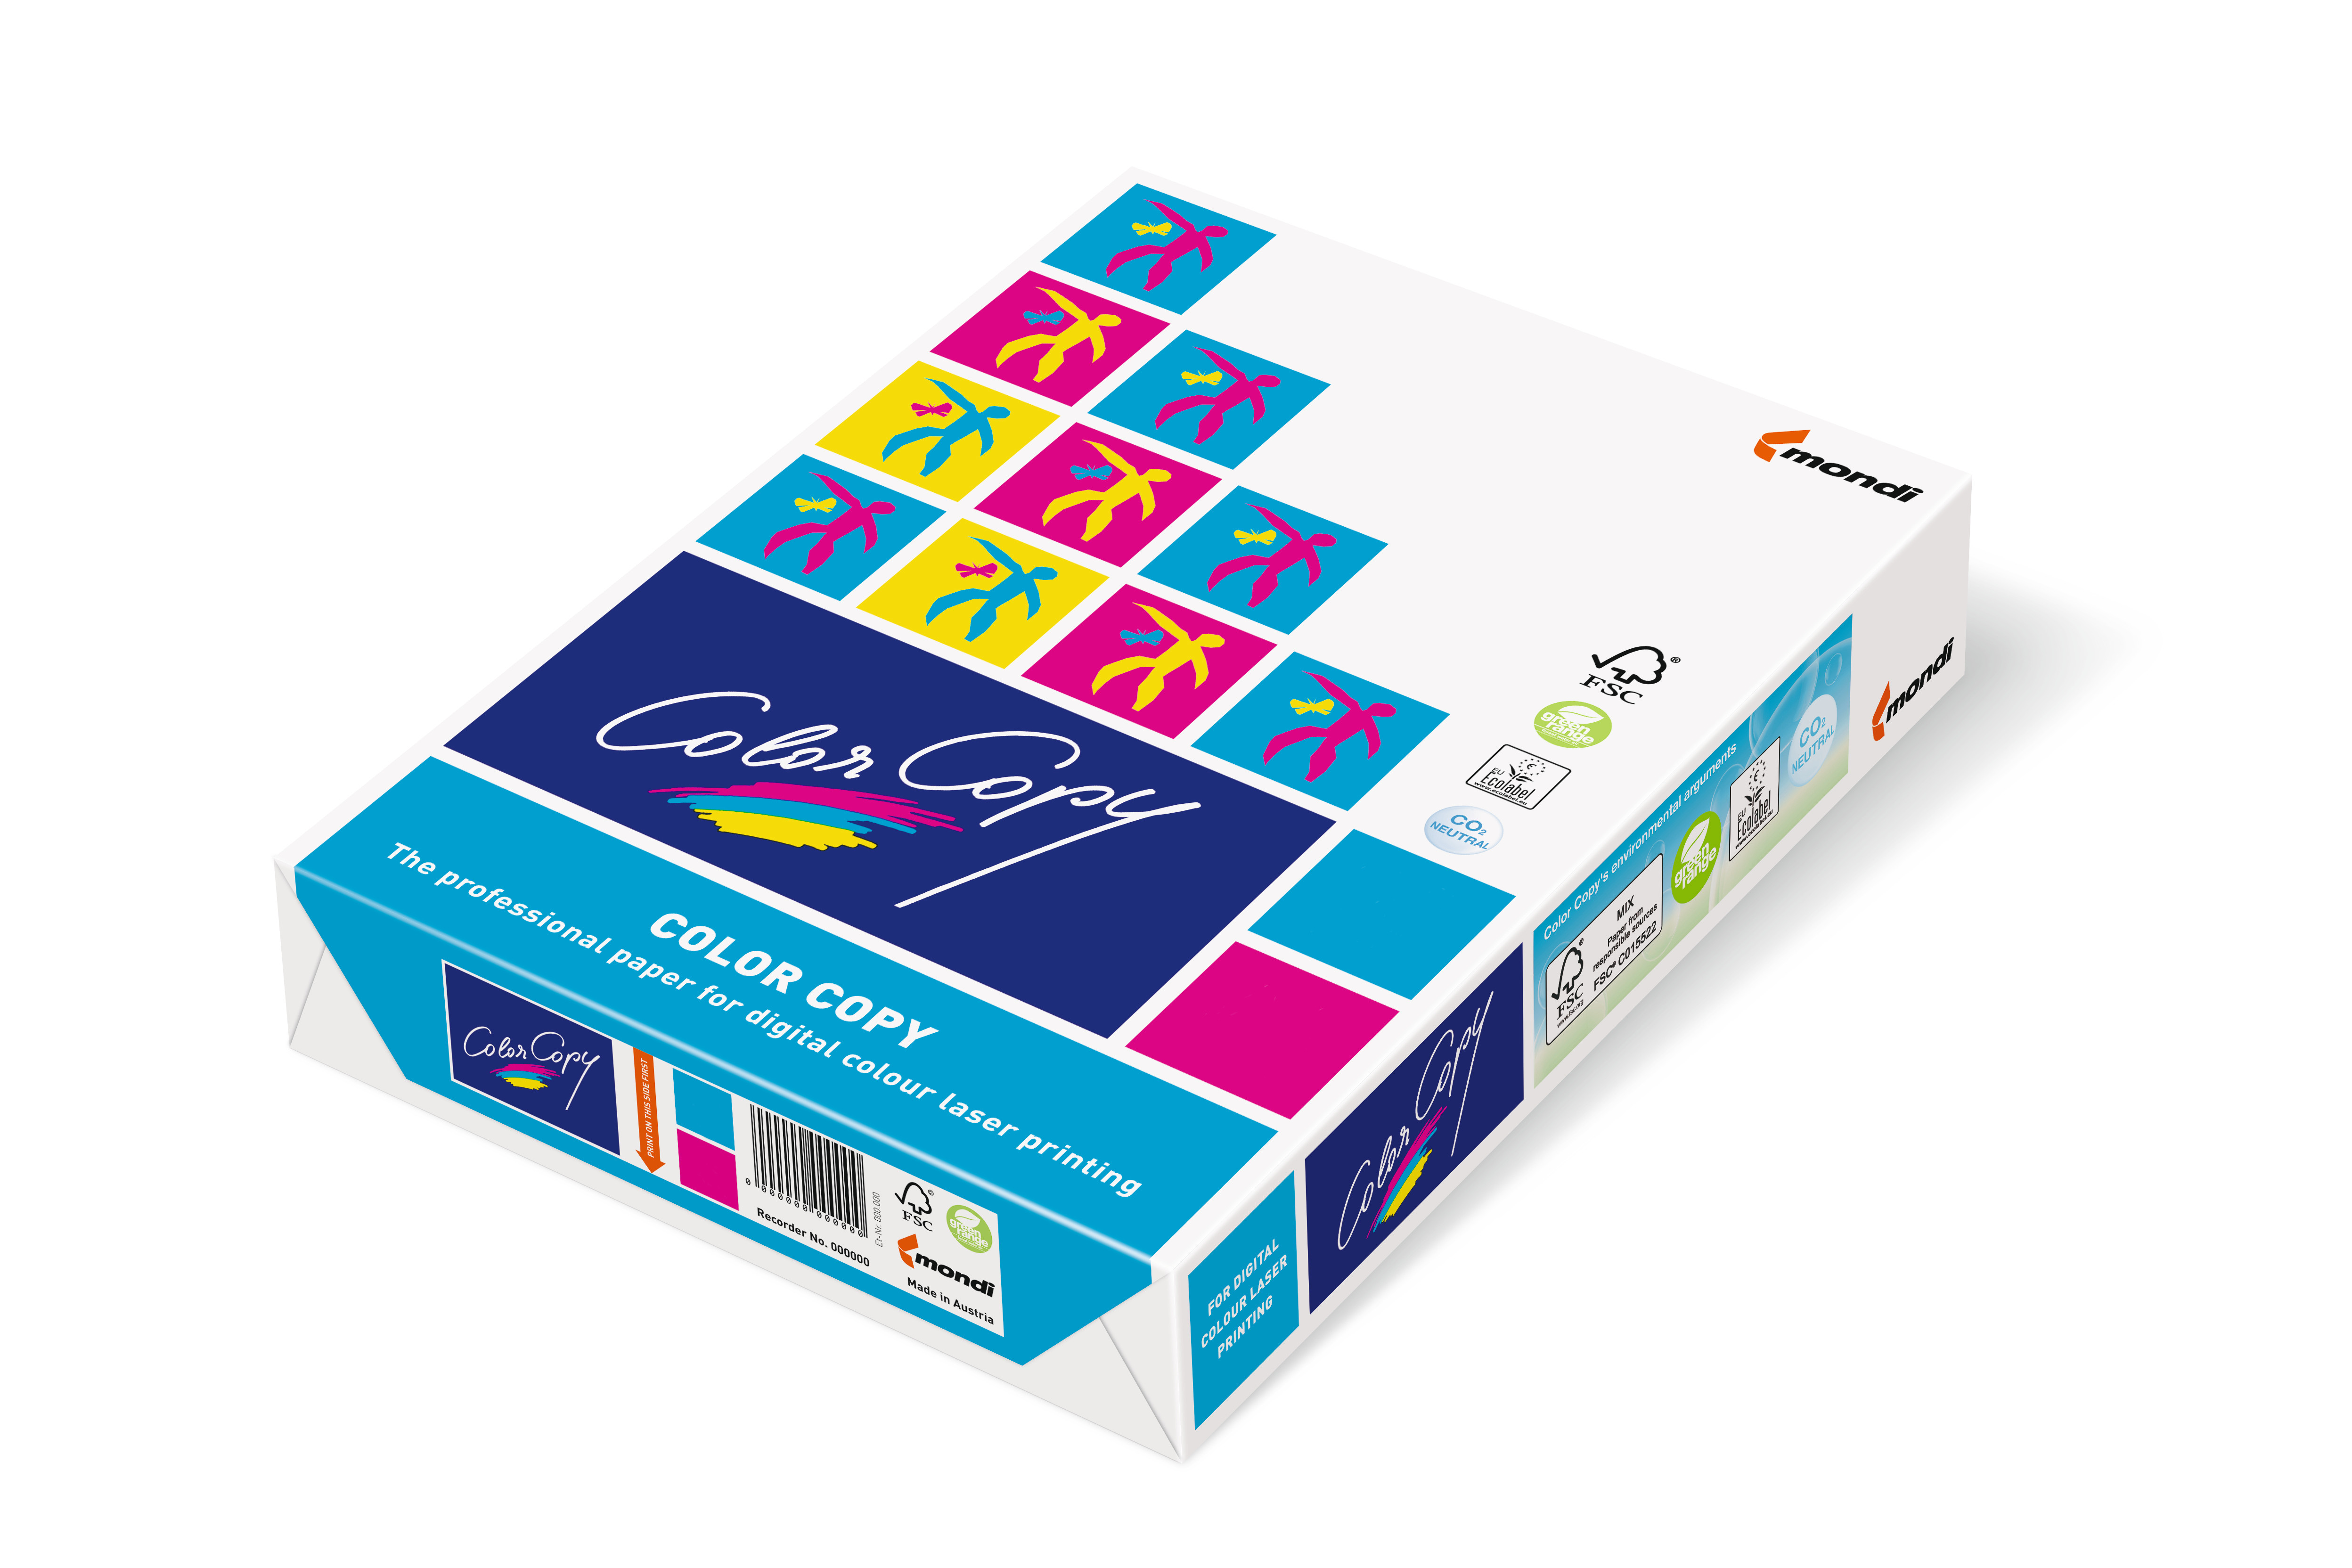 Mondi Color Copy Papier 280g/m² DIN-A3 150 Blatt